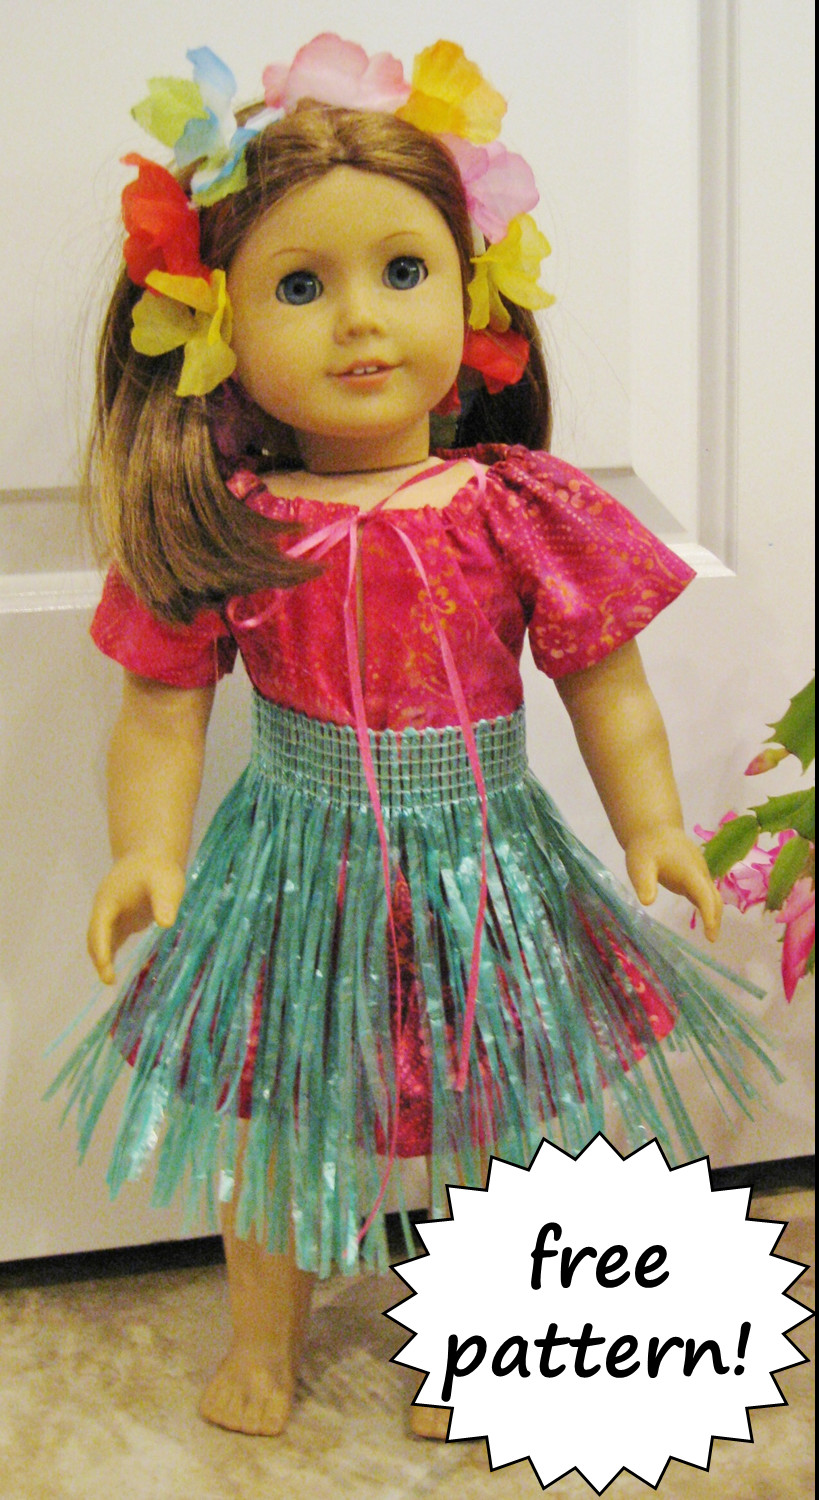 Lovely Bonnieprojects American Girl Hula Outfit Free Pattern American Girl Doll Patterns Of Delightful 40 Photos American Girl Doll Patterns